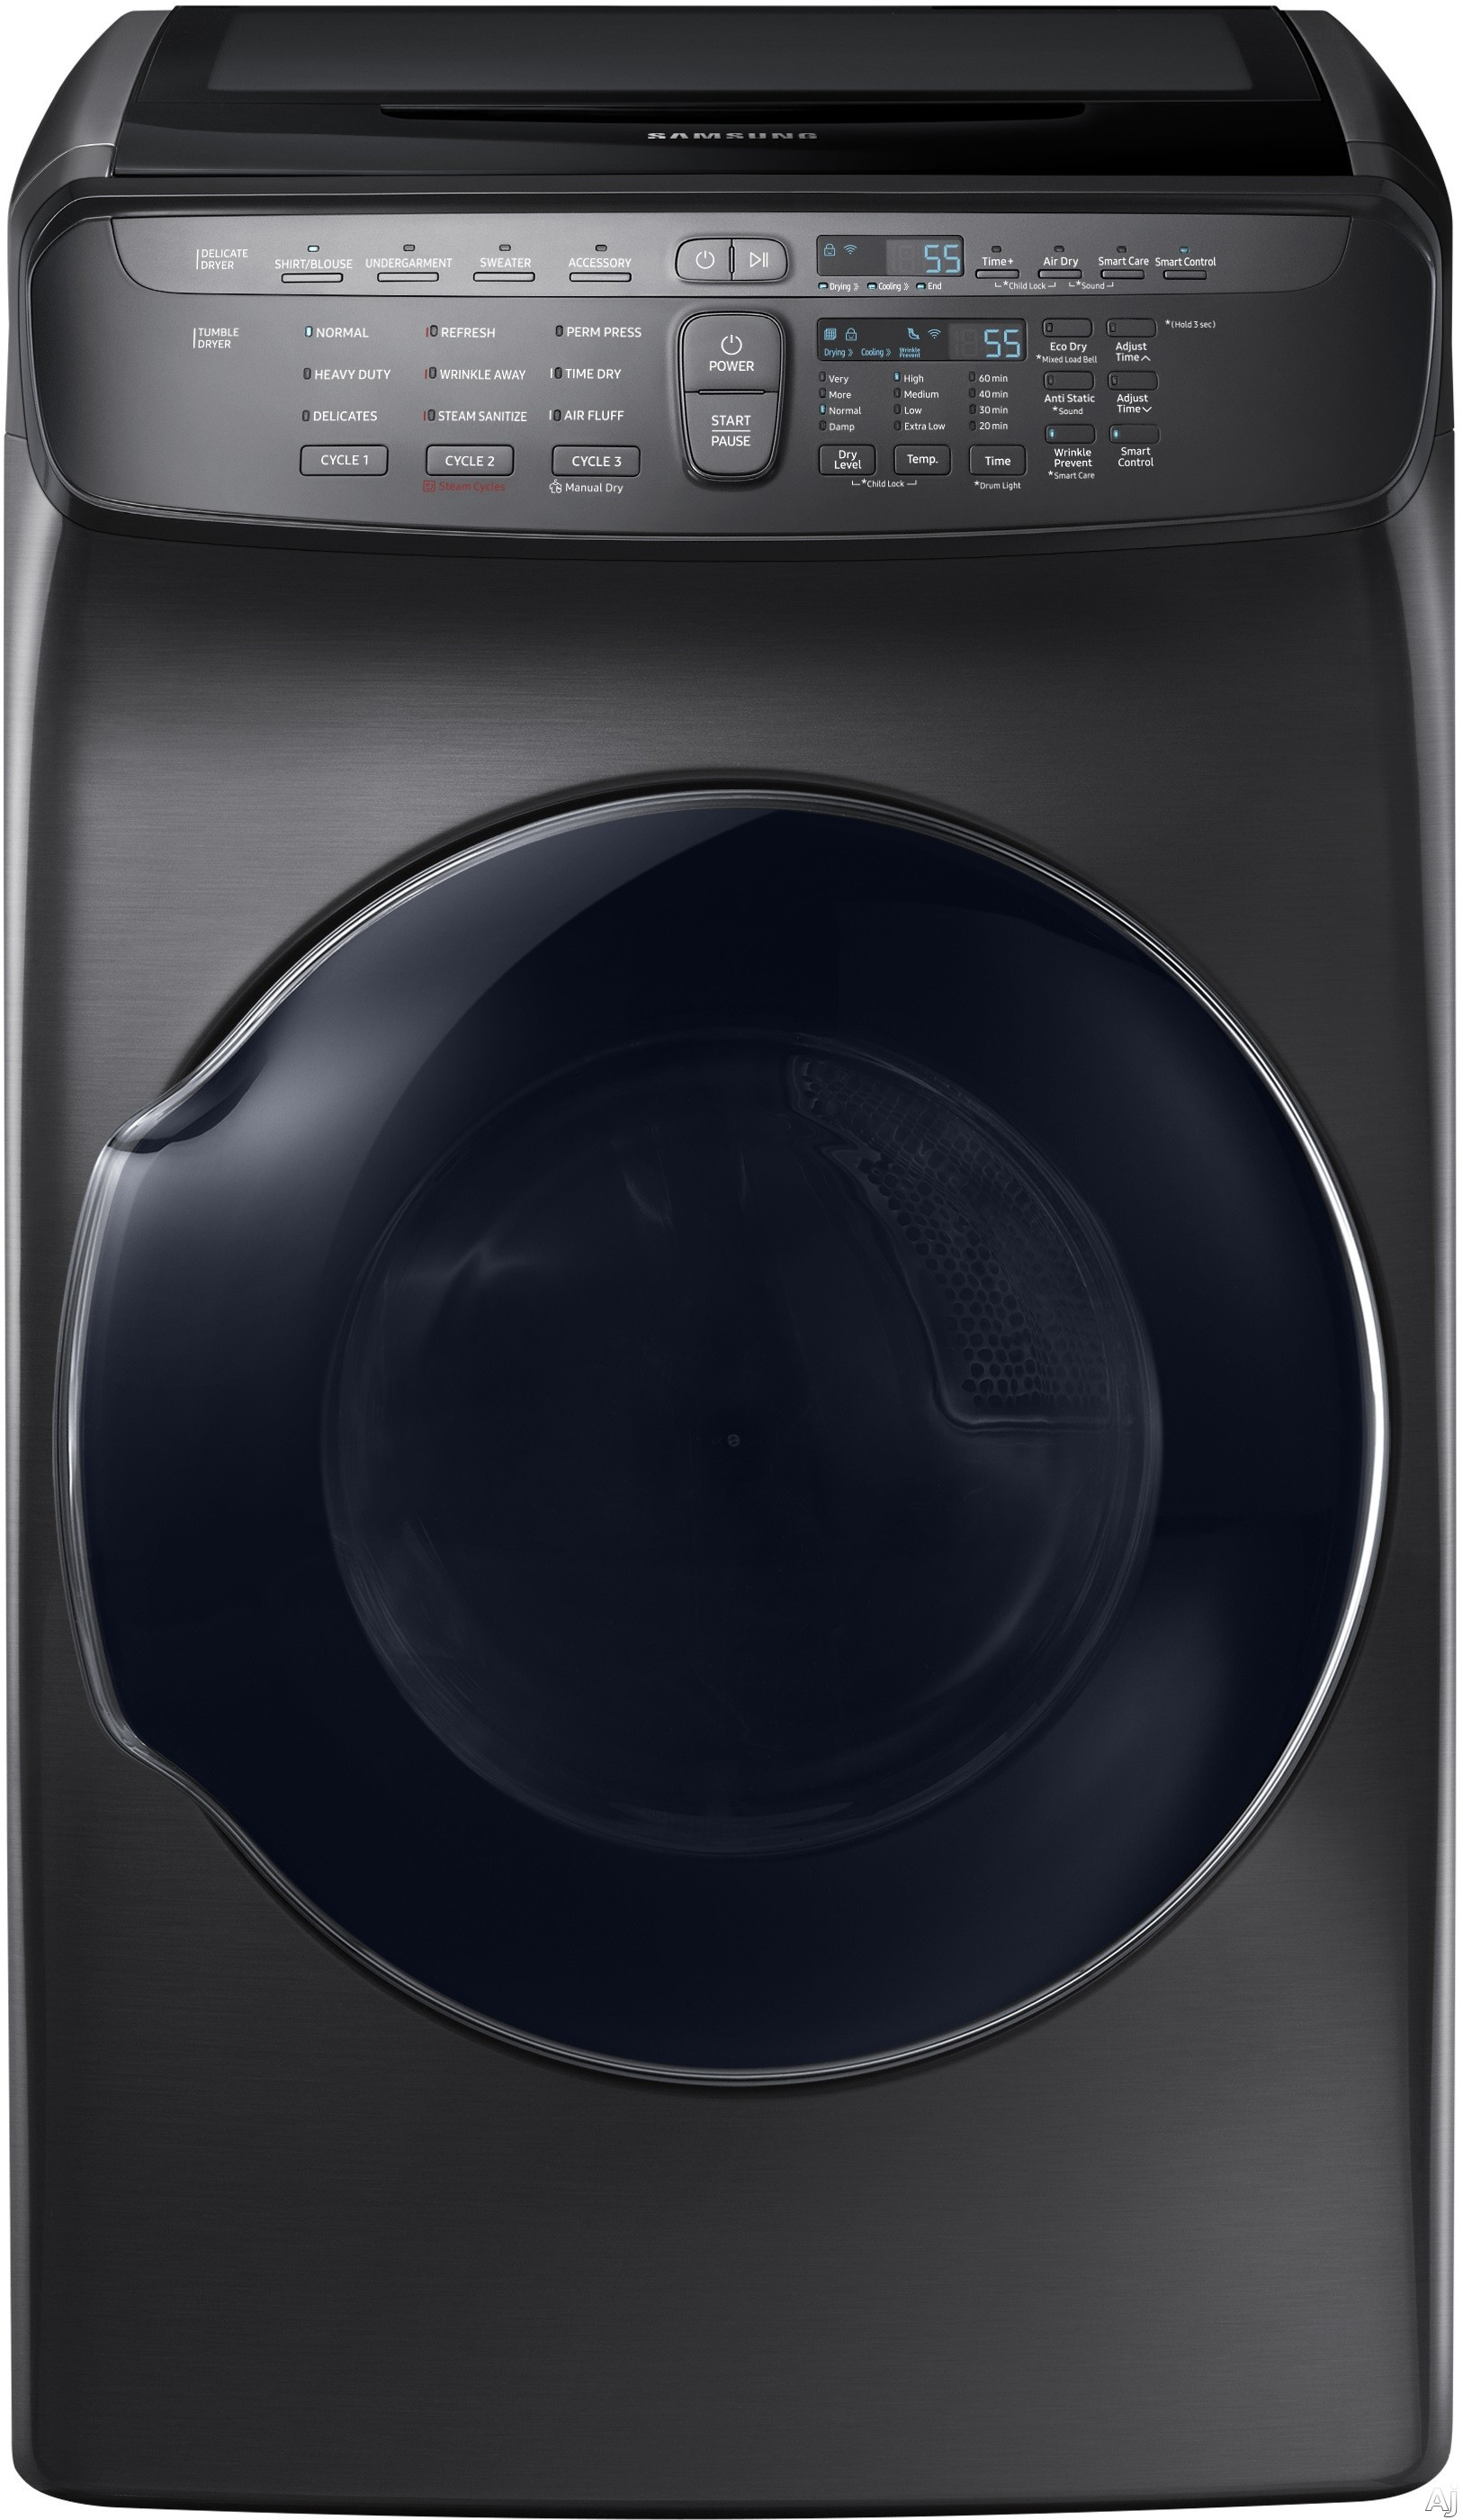 "Samsung FlexWash DVG55M9600X 27 Inch FlexDryâ""¢ Gas Dryer with Multi-Steamâ""¢, Sensor Dry, Wi-Fi Connectivity, 13 Dry Cycles, Wrinkle Release, Anti-Static Option, Smart Care, Eco Dry, Vent Sensor and 7.5 cu. ft. Capacity"